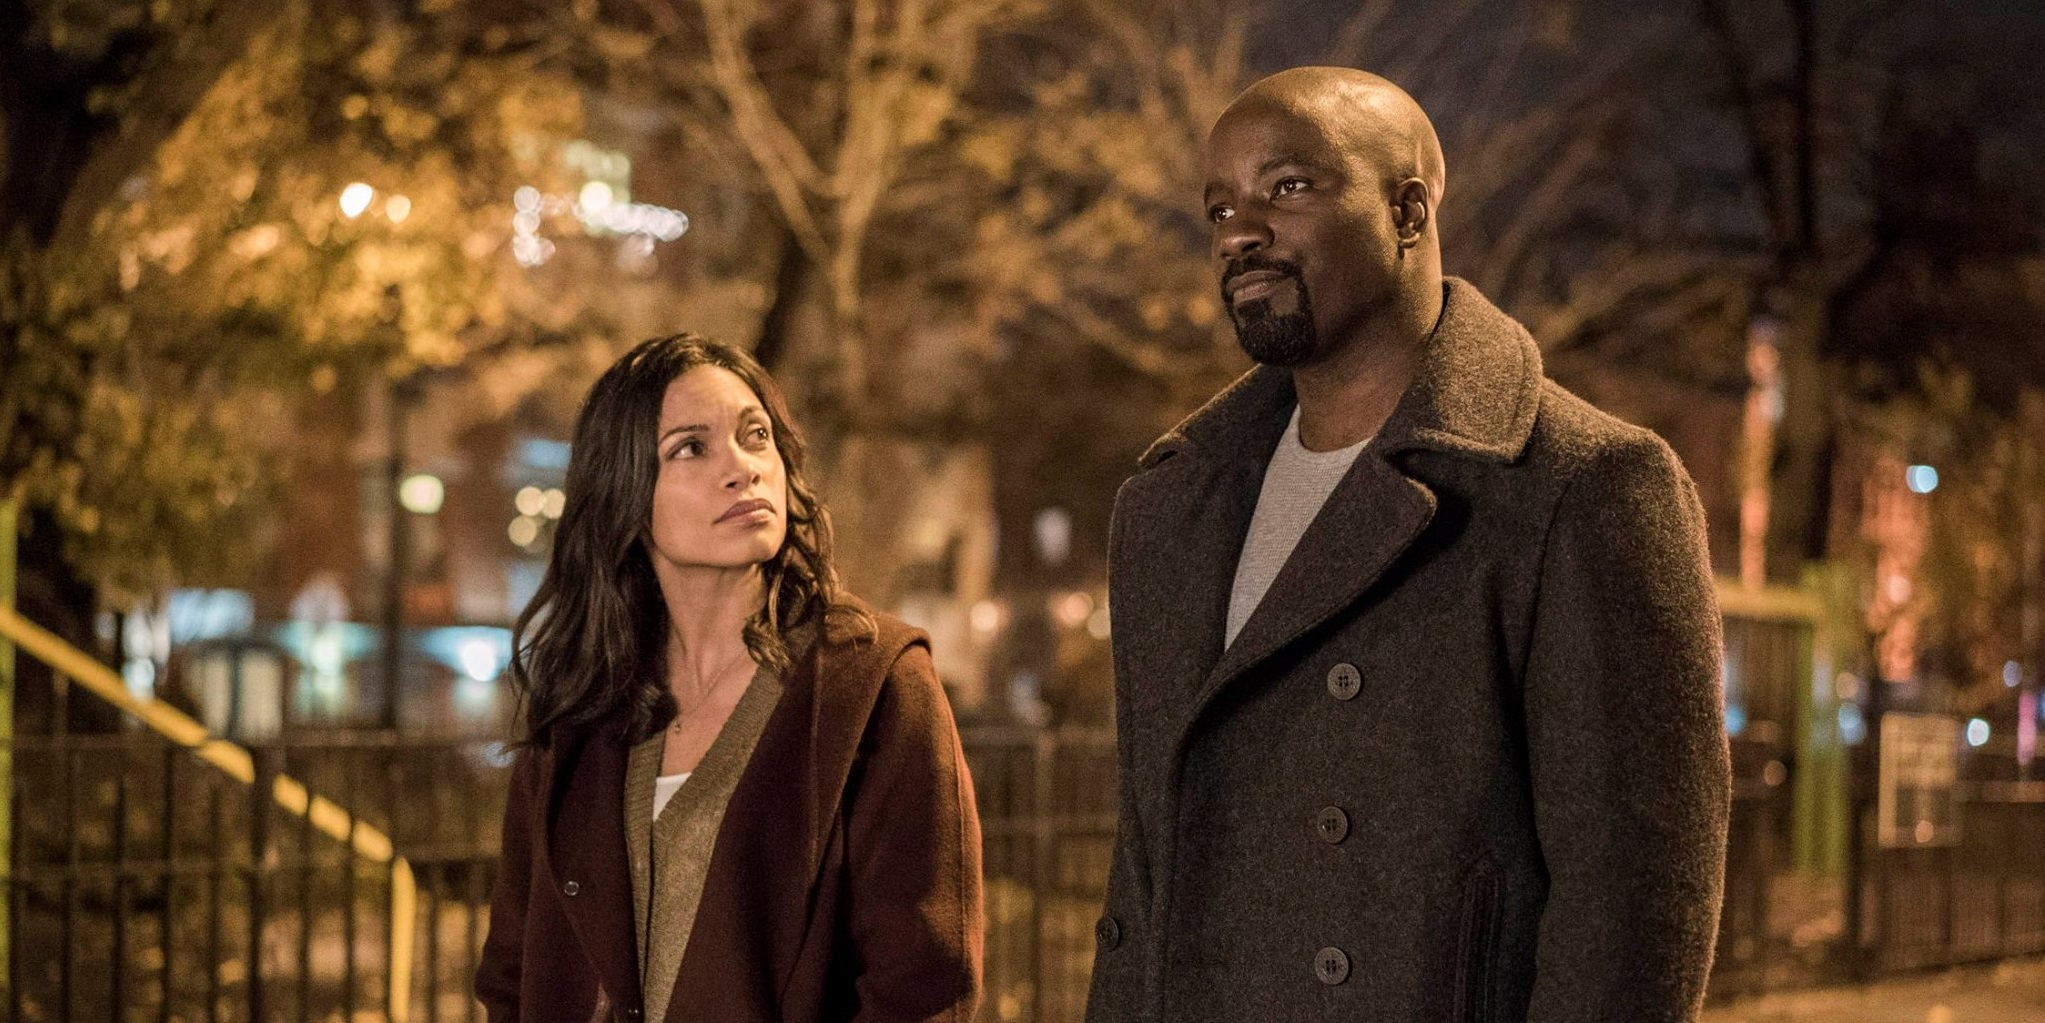 Rosario Dawson and Mike Colter as Claire Temple and Luke Cage